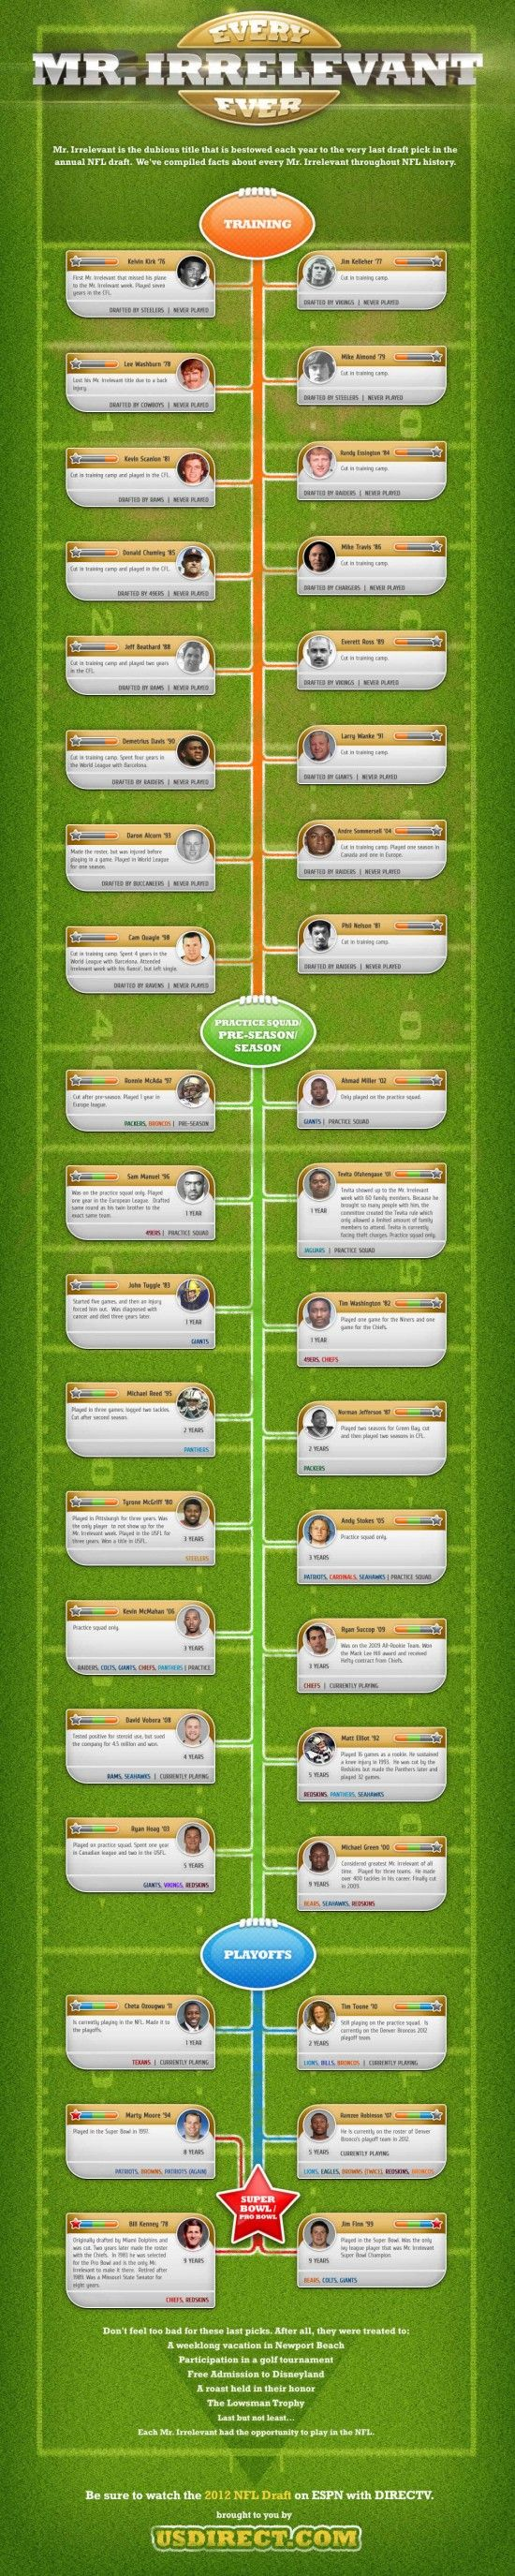 Check out this infographic, which contains facts about every Mr. Irrelevant throughout NFL history.